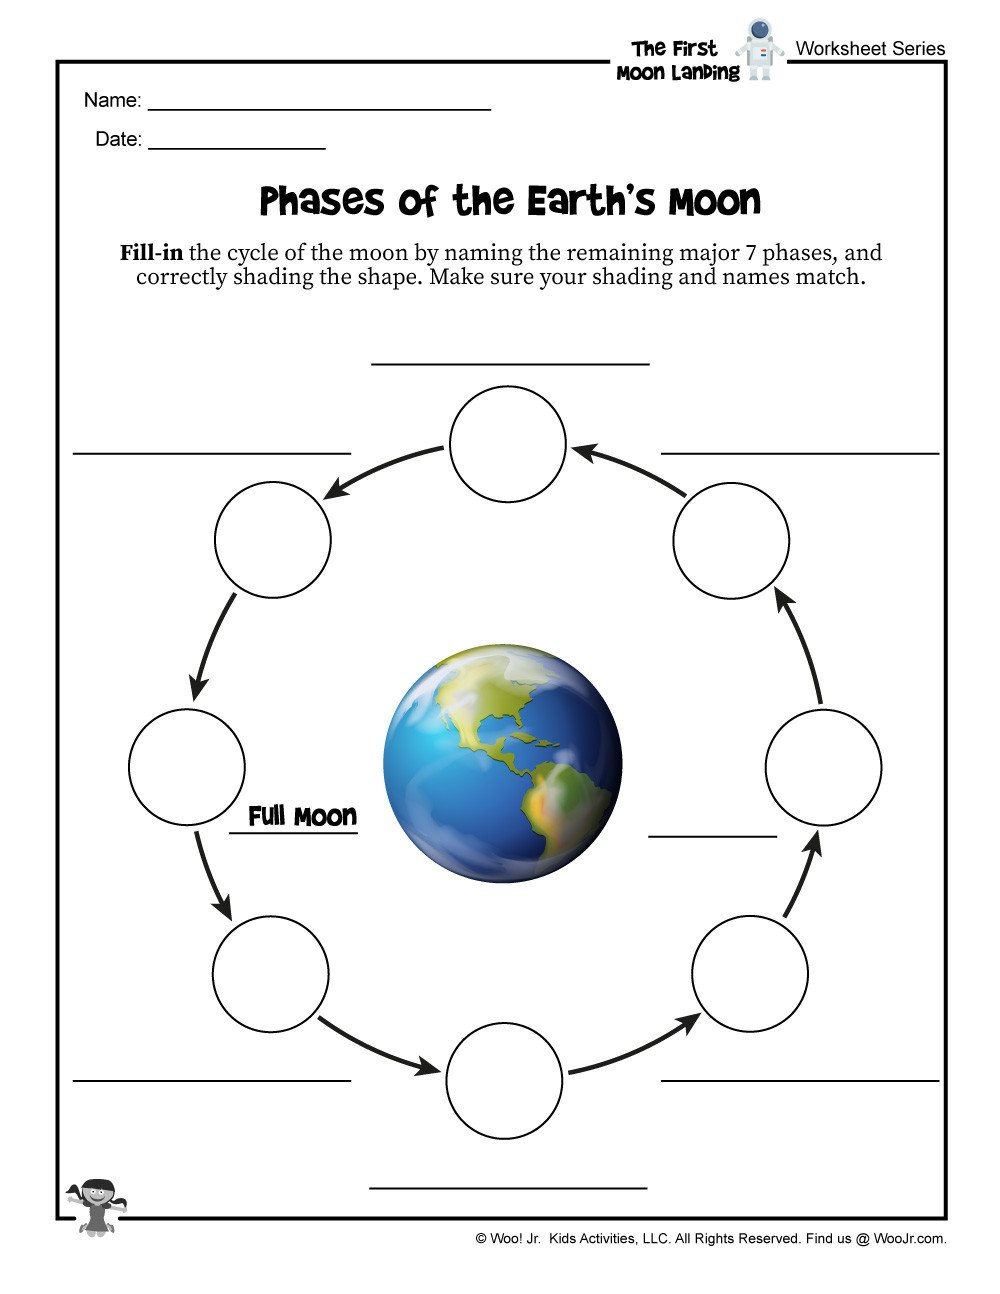 Learn the Moon Phases Fill in the Blank